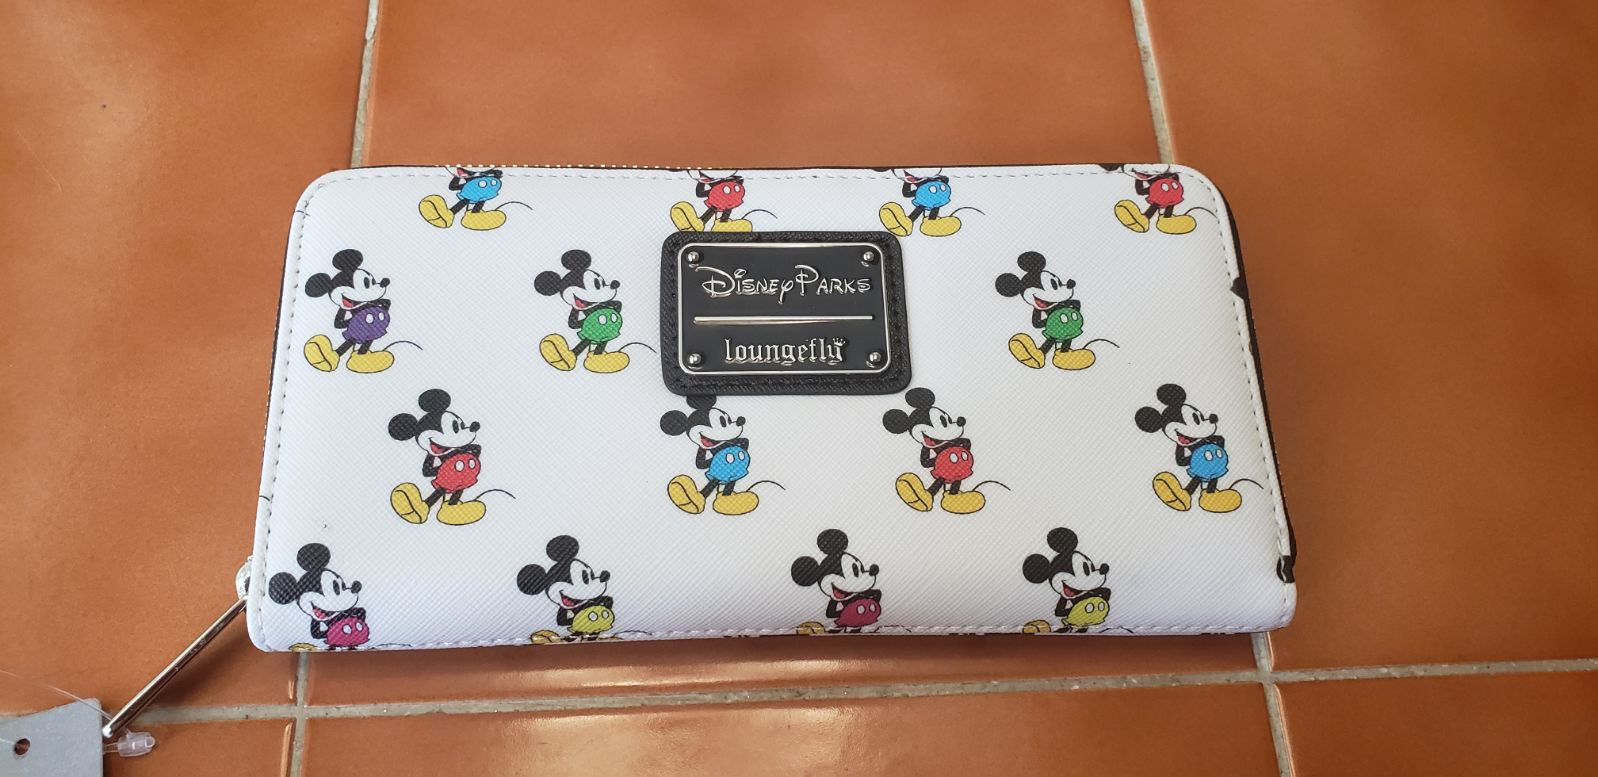 Disney Mickey Mouse Loungefly Wallet